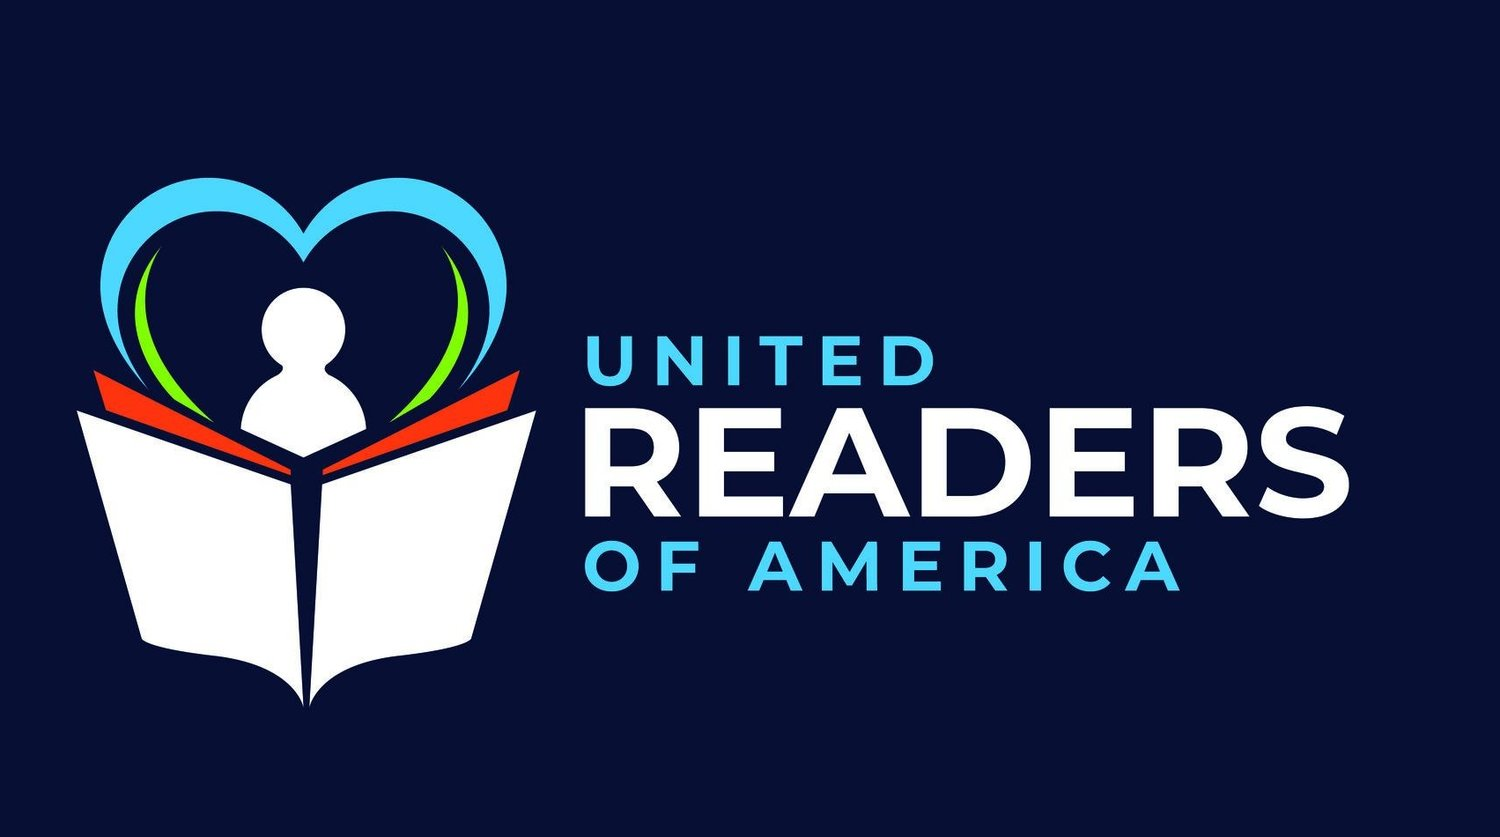 United Readers of America